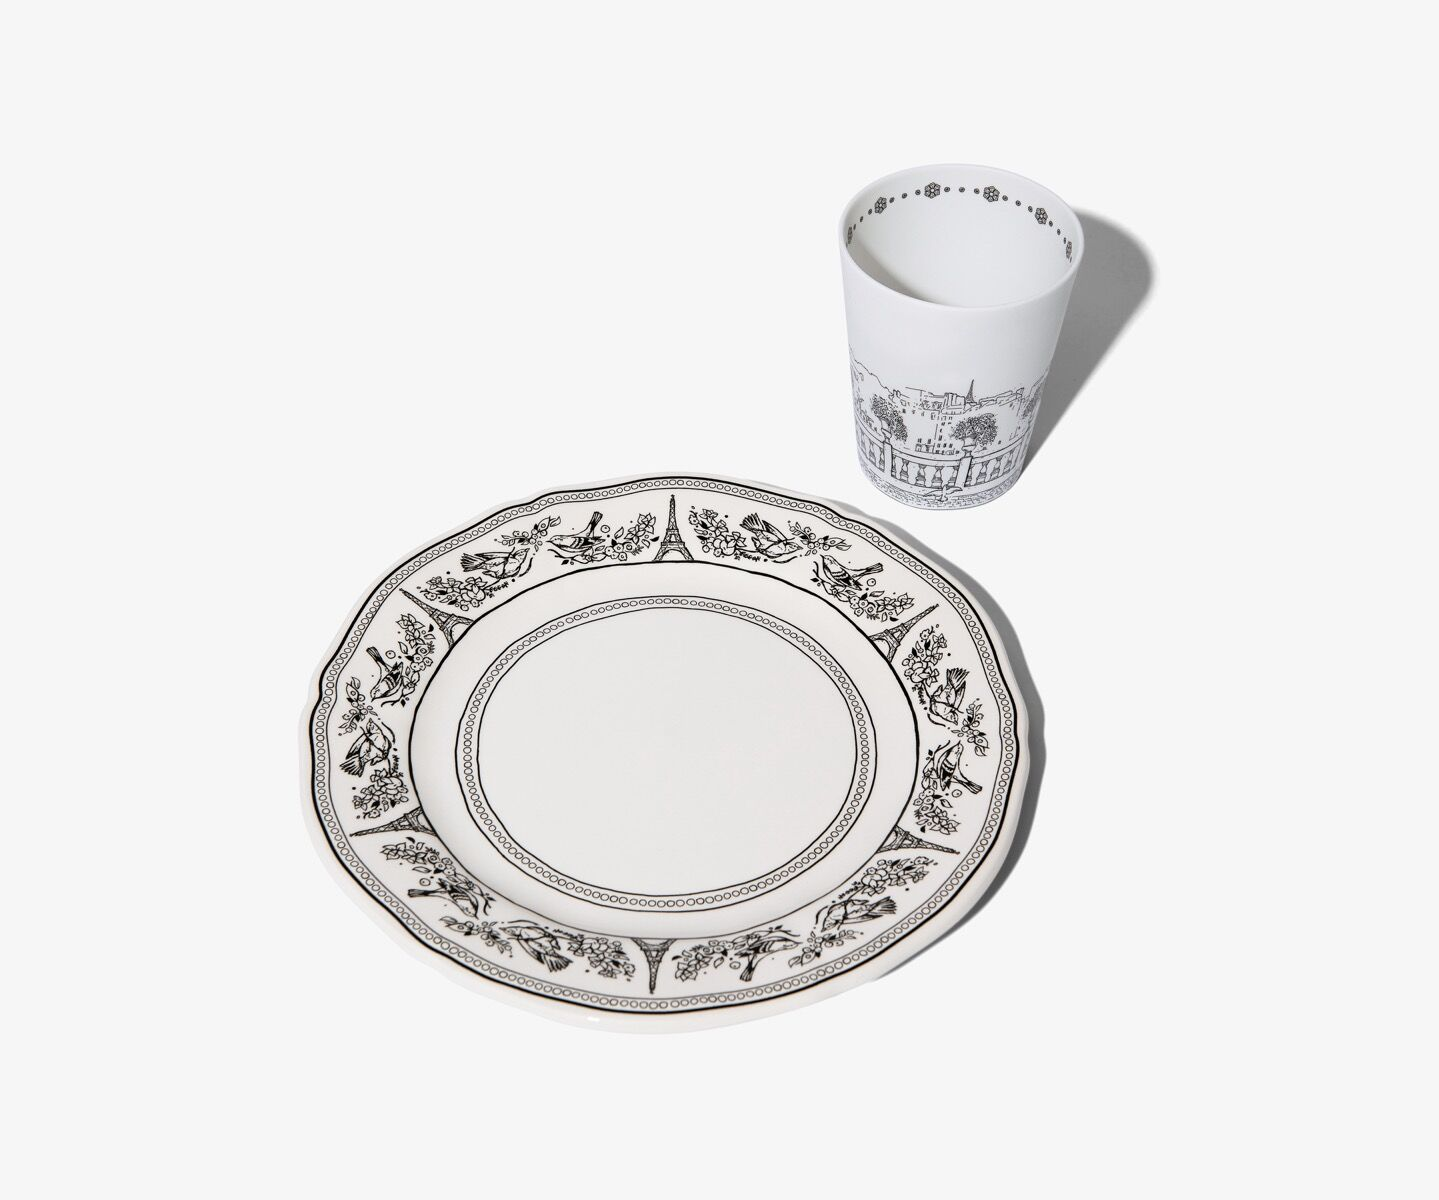 diptyque paris plate and candle holder